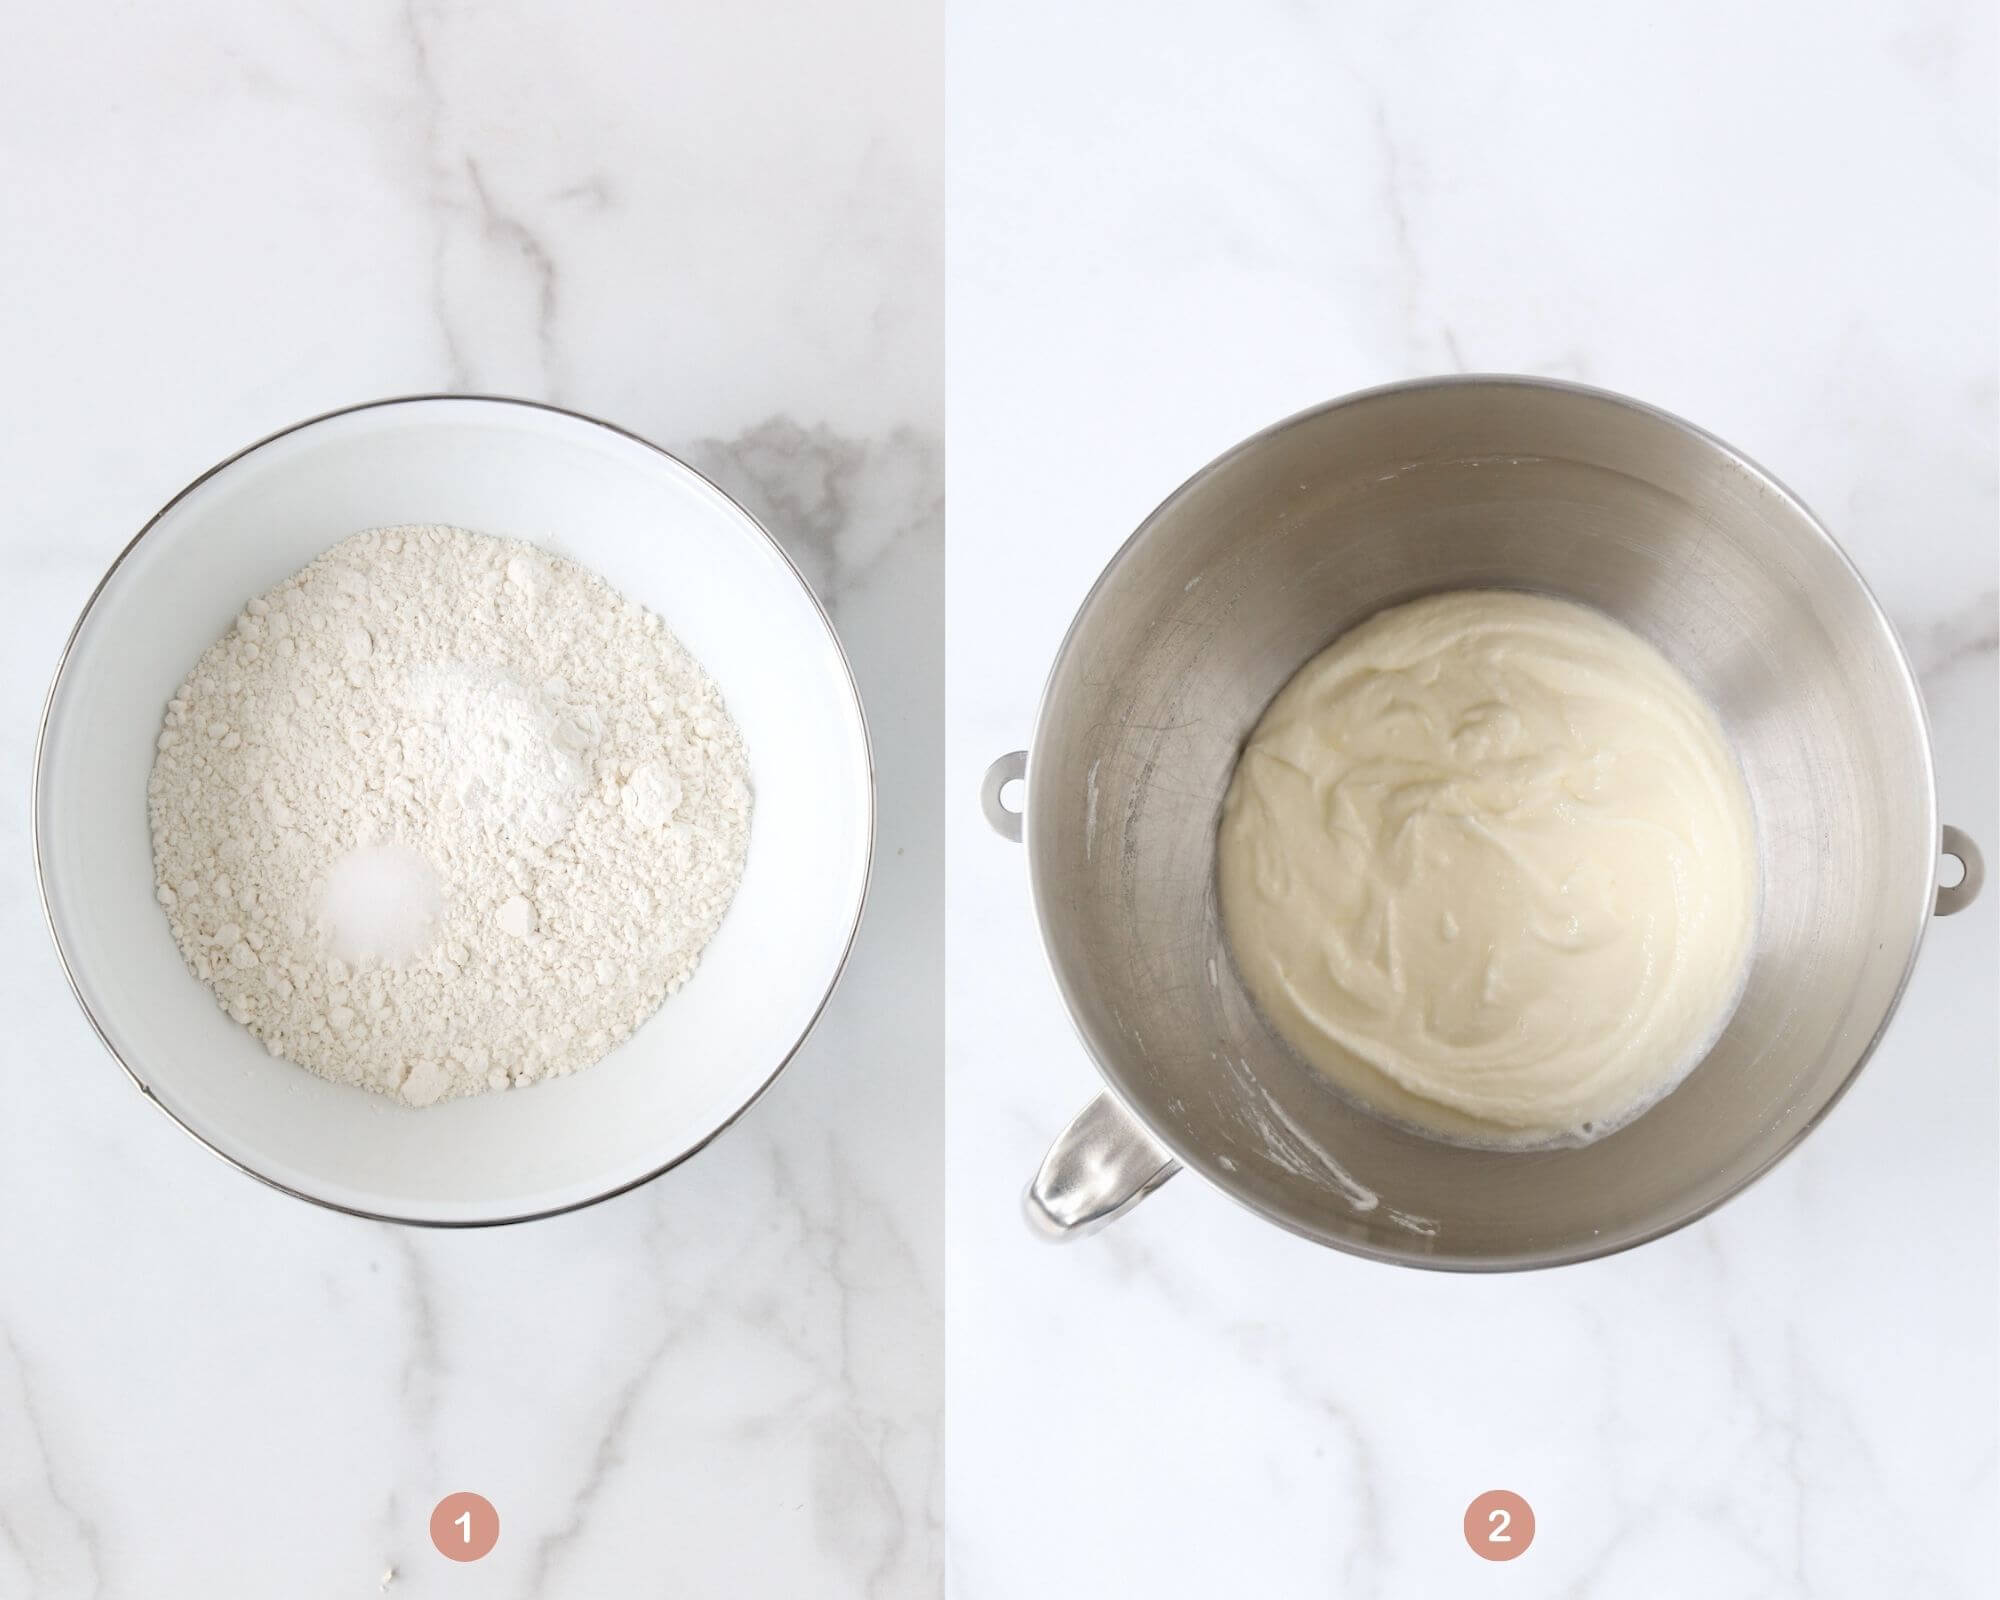 two pictures side by side showing the flour mixture and the next picture showing a mixing bowl with cake batter